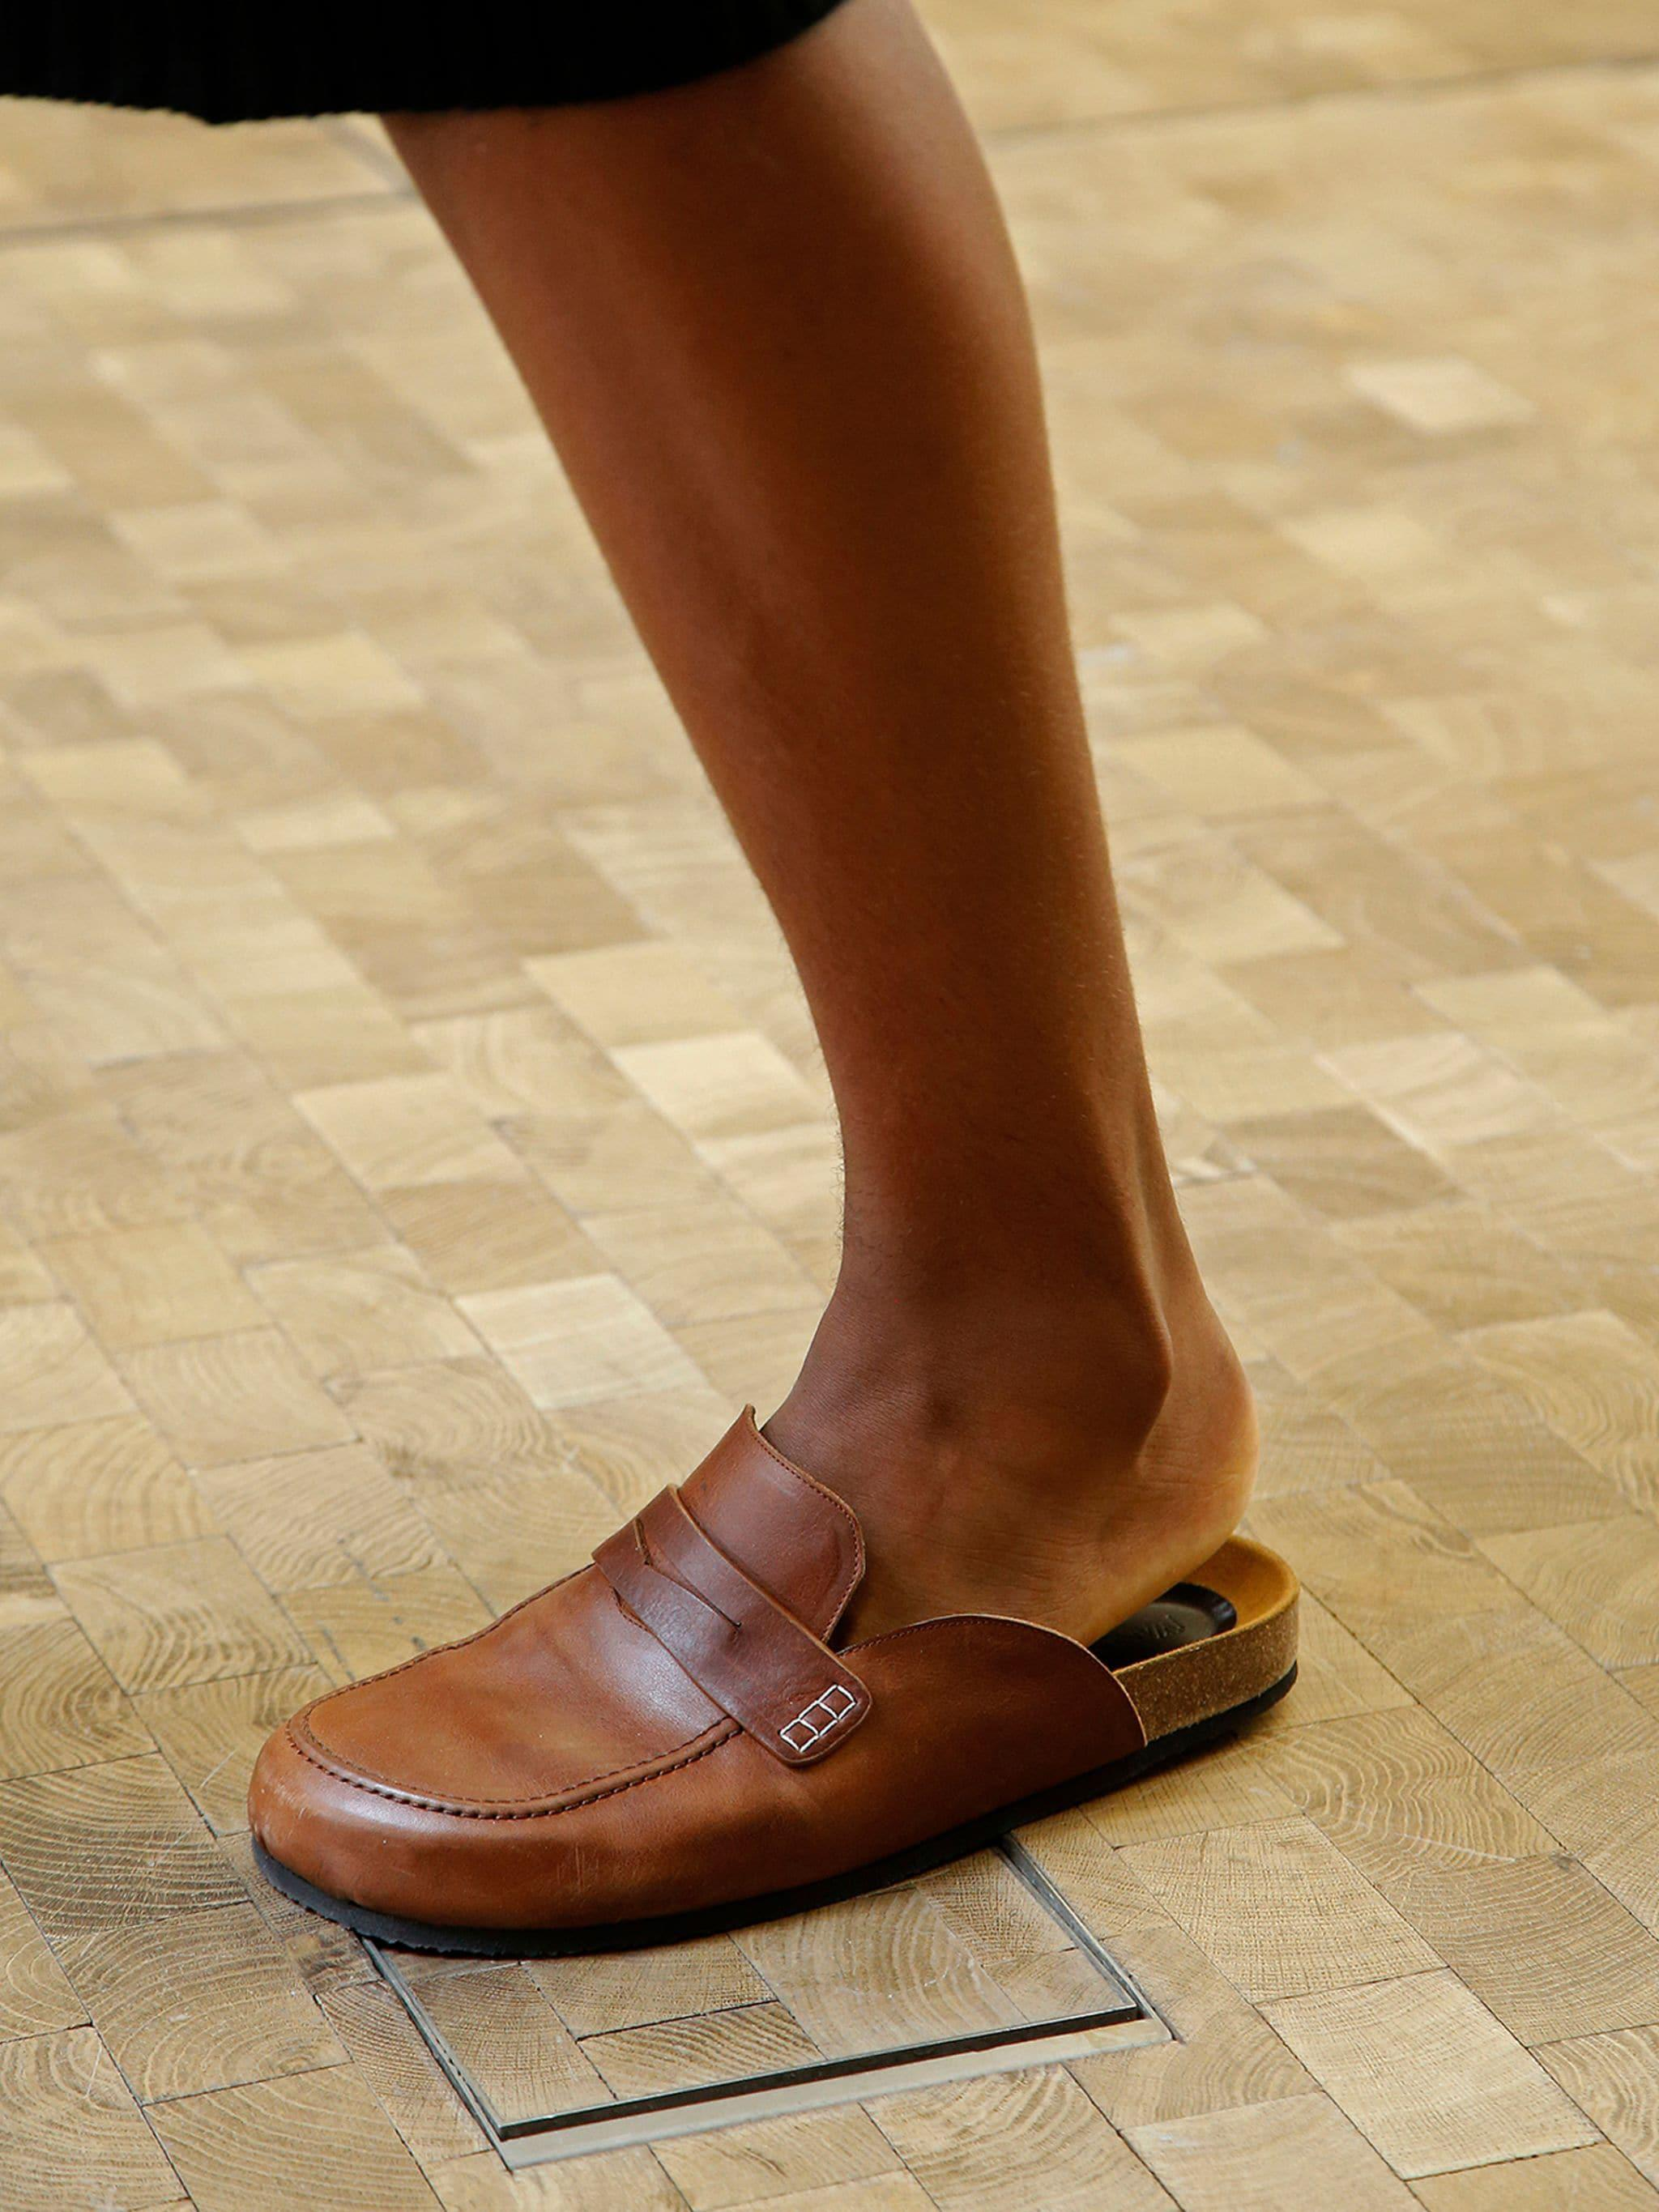 LEATHER LOAFER MULES 4